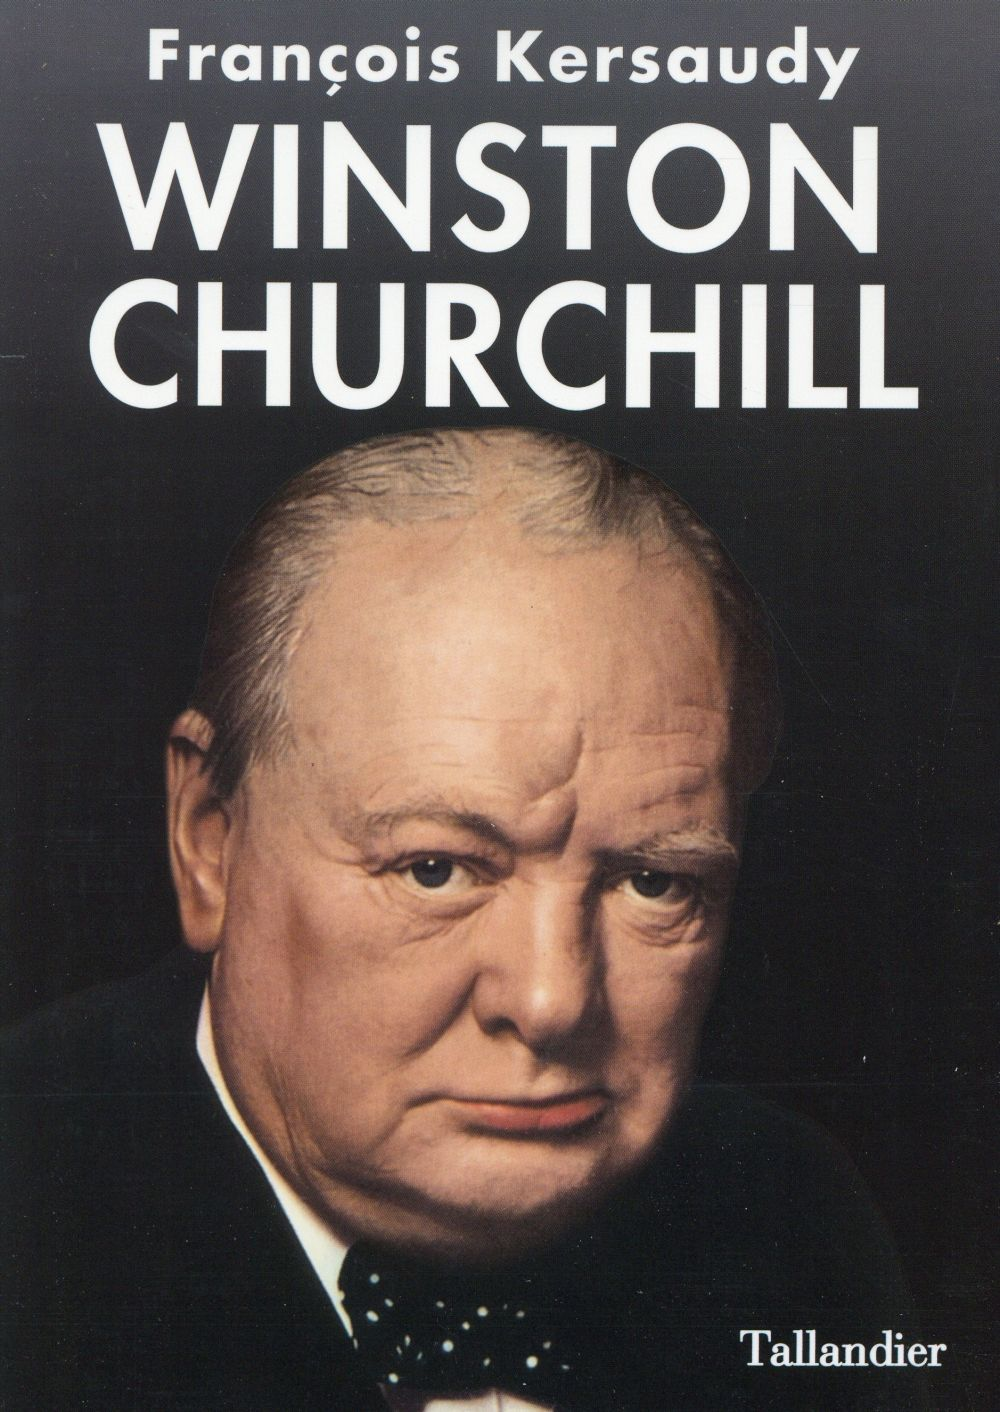 WINSTON CHURCHILL NED